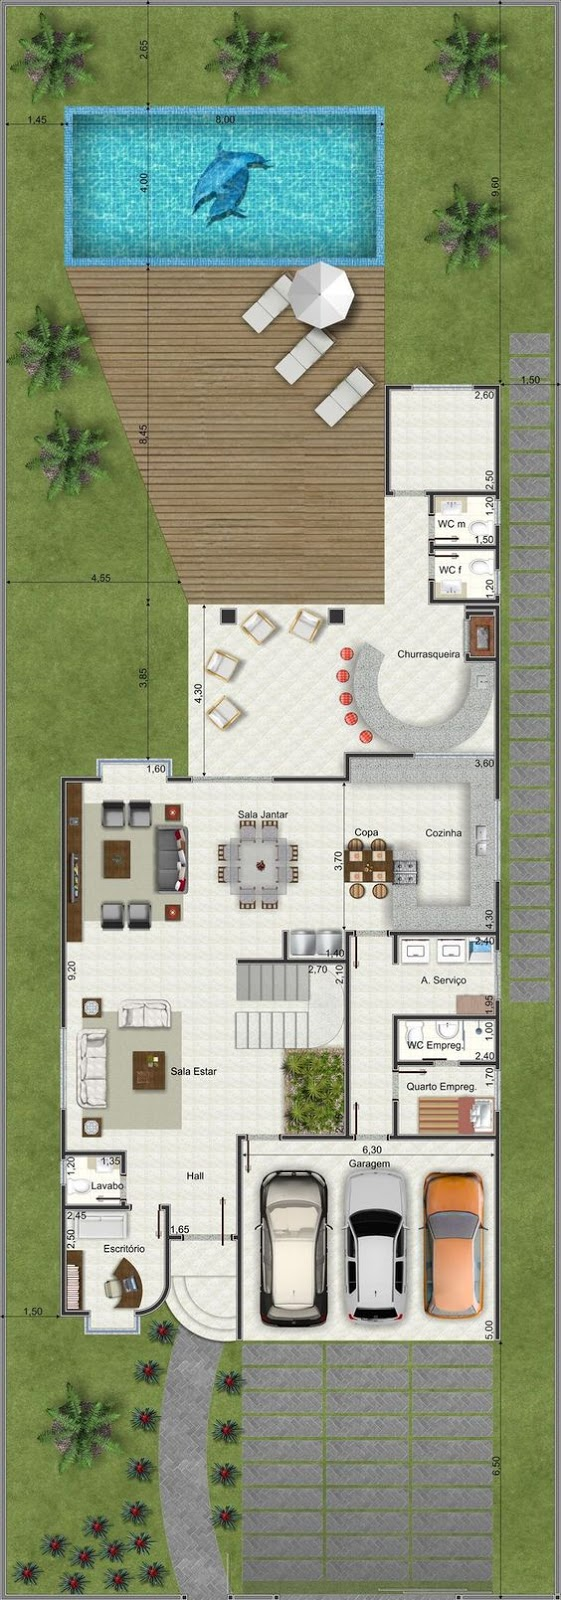 Large House floor plan 326 square meters with 3 bedrooms and private pool